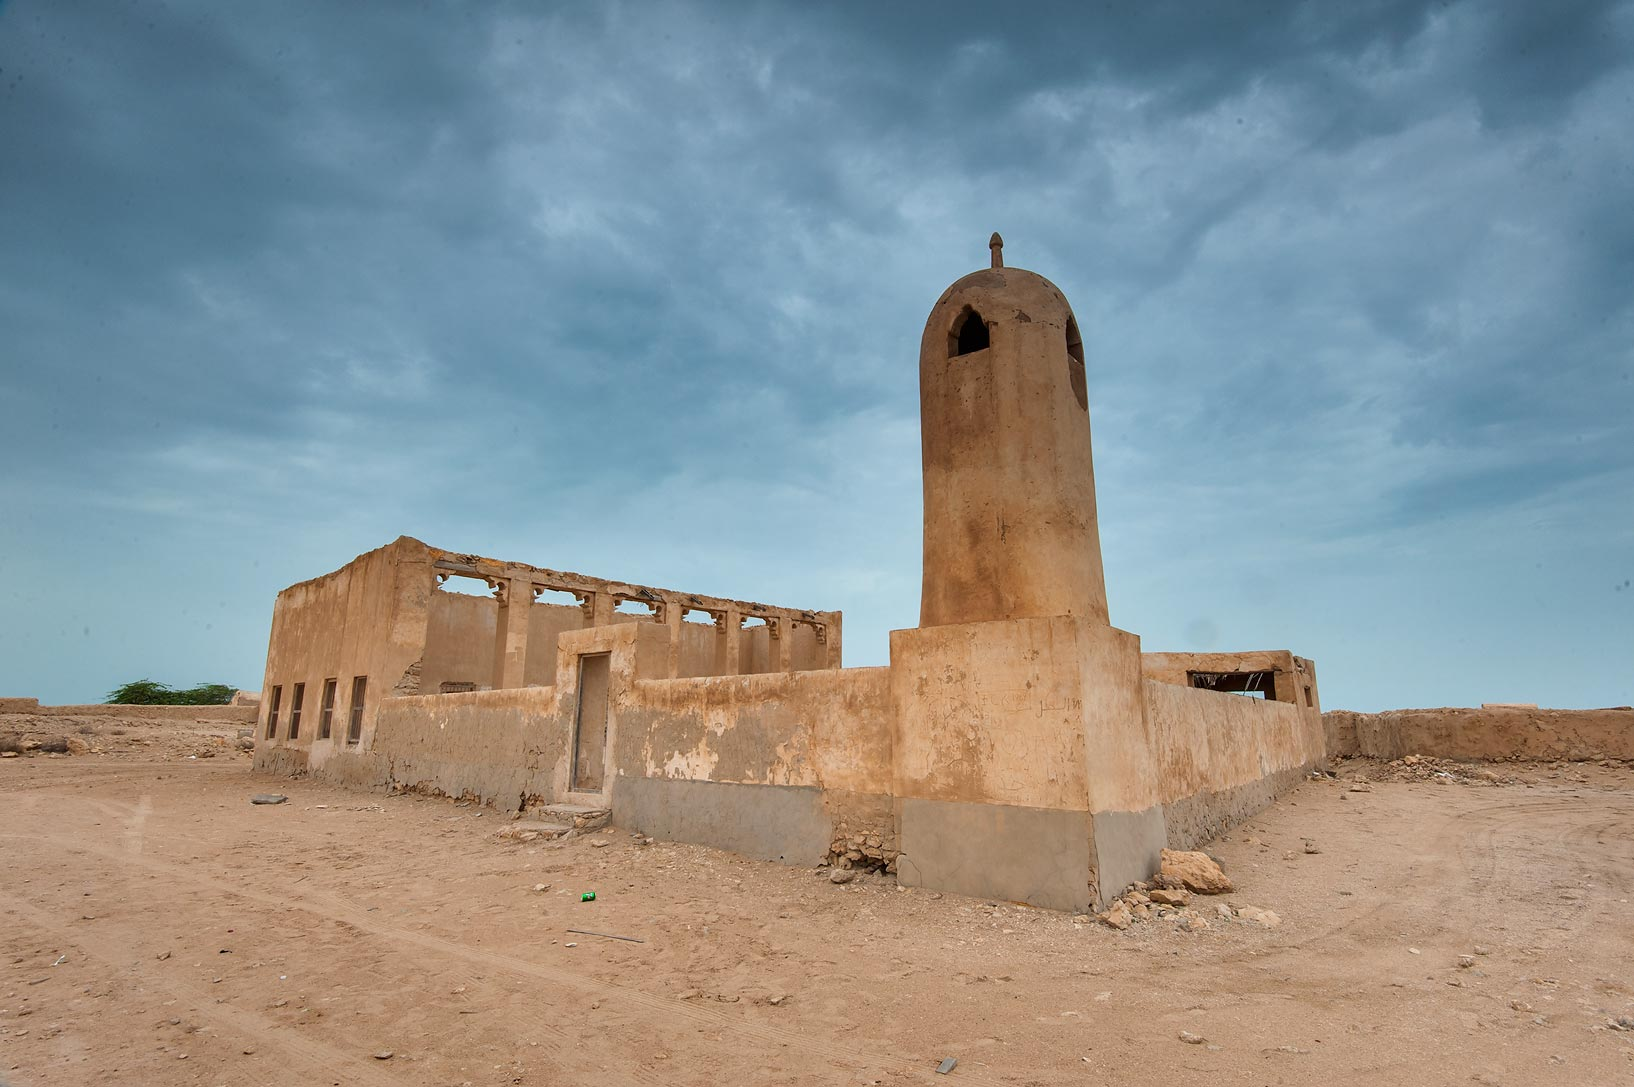 Al Hussein Mosque in a village of Al Jumail (Jumayl) west of Ruwais. Northern Qatar